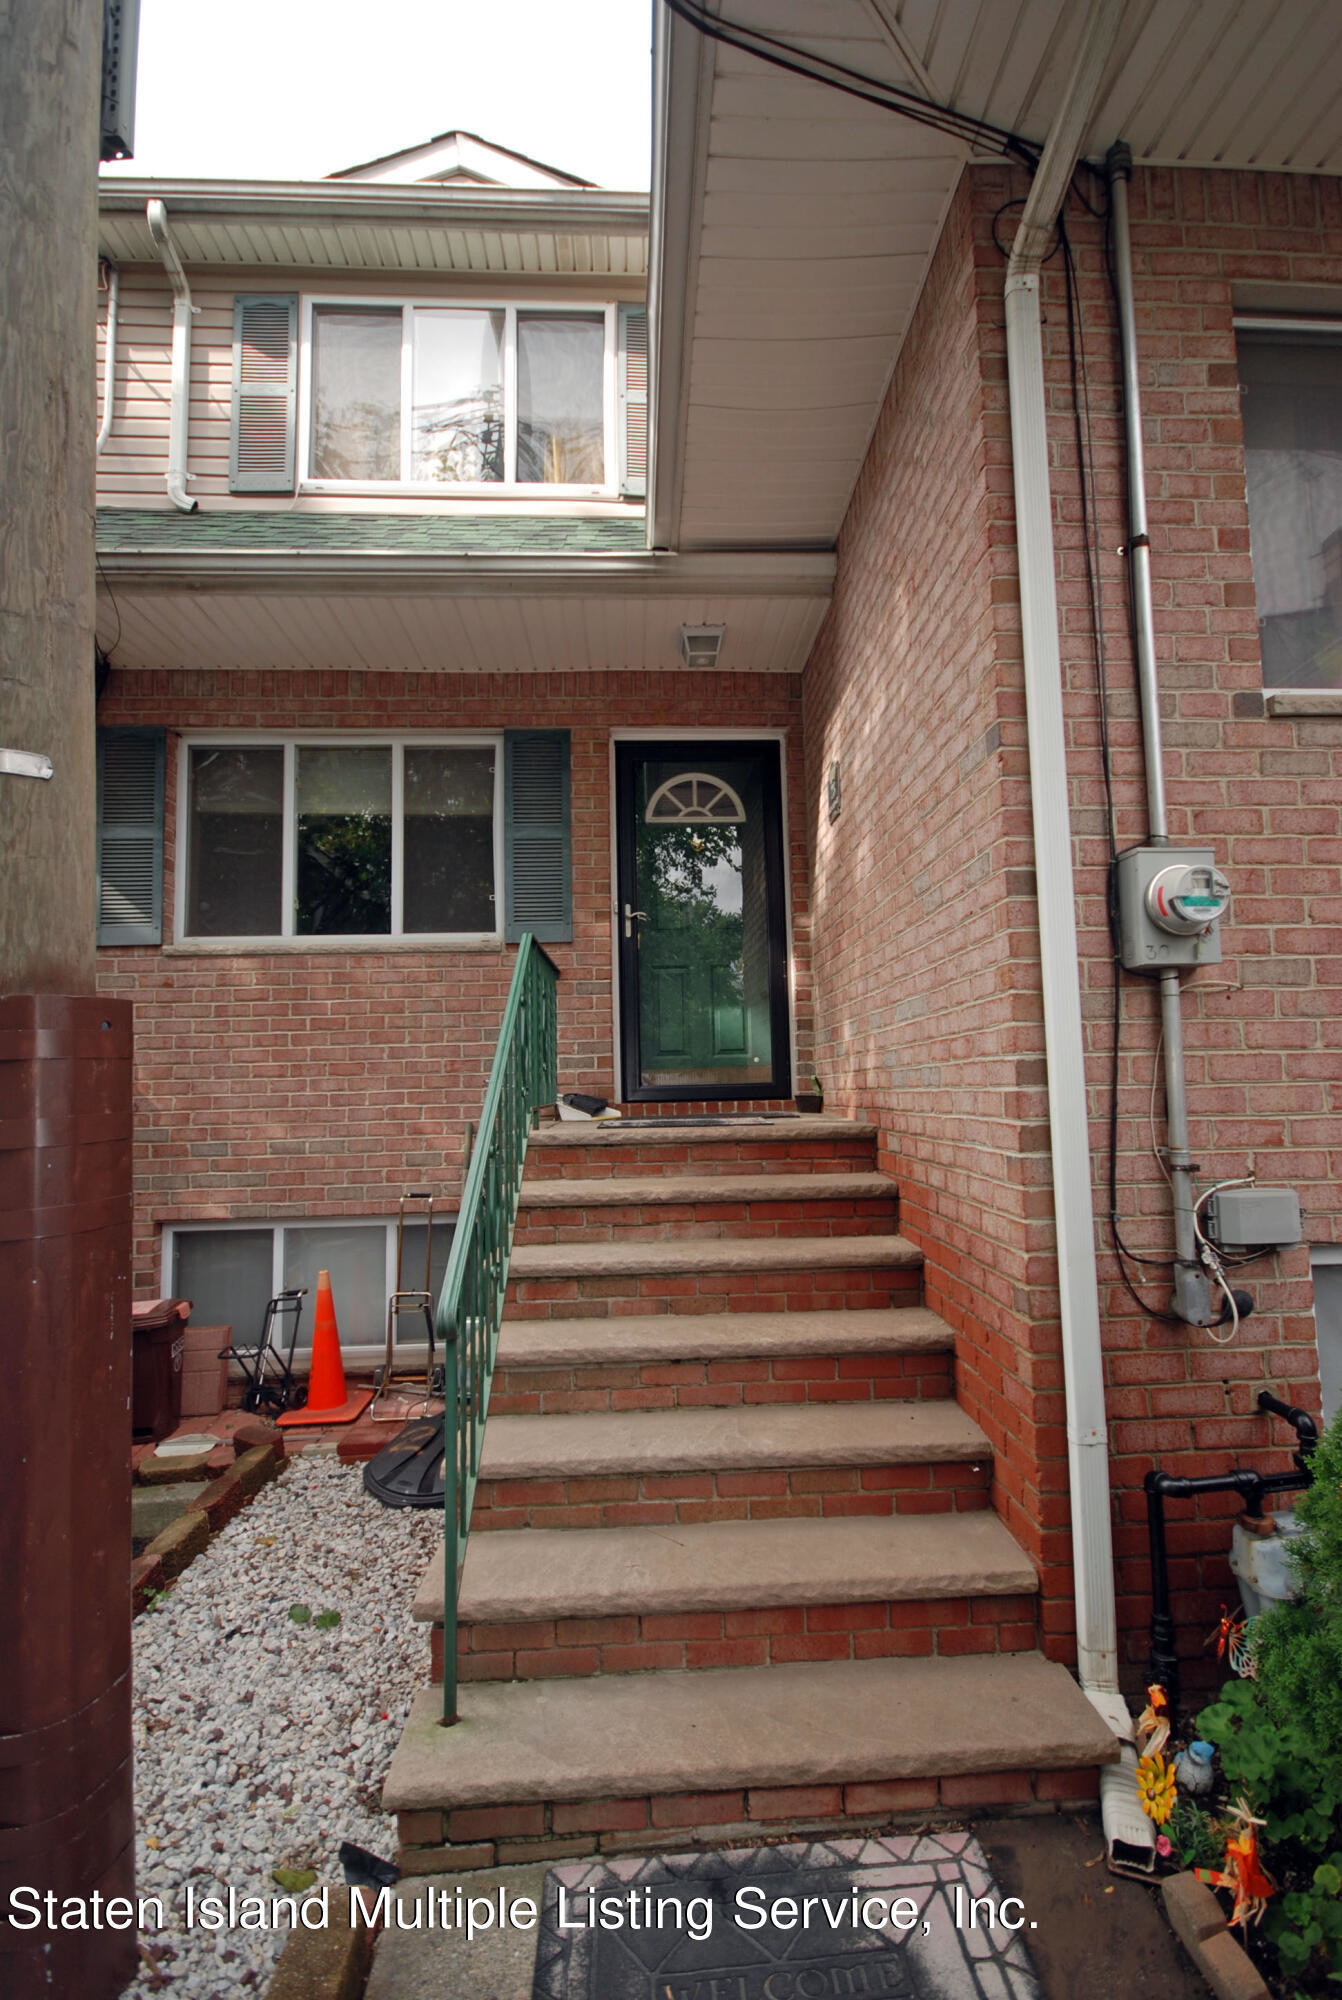 3-Bedroom Townhouse In Port Richmond